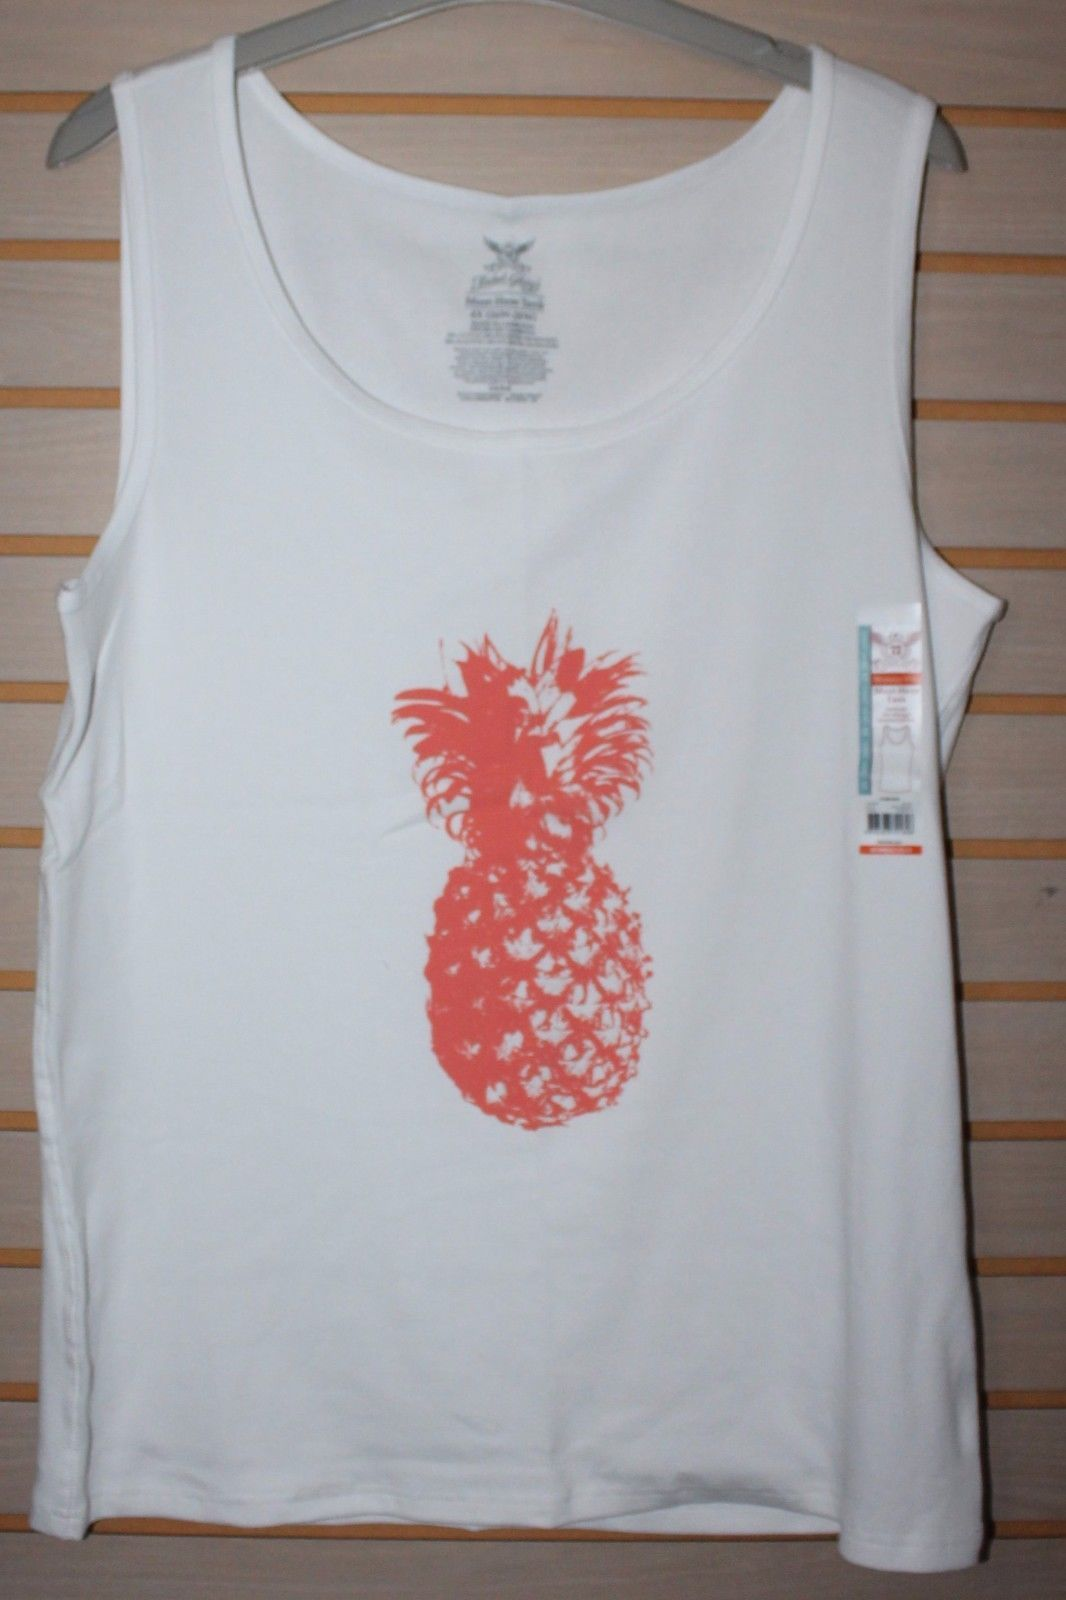 45518c58b07 S l1600. S l1600. Previous. CUTE NEW WOMENS PLUS SIZE 4X 26W 28W WHITE  PINEAPPLE SUMMER TIME RIBBED TANK TOP